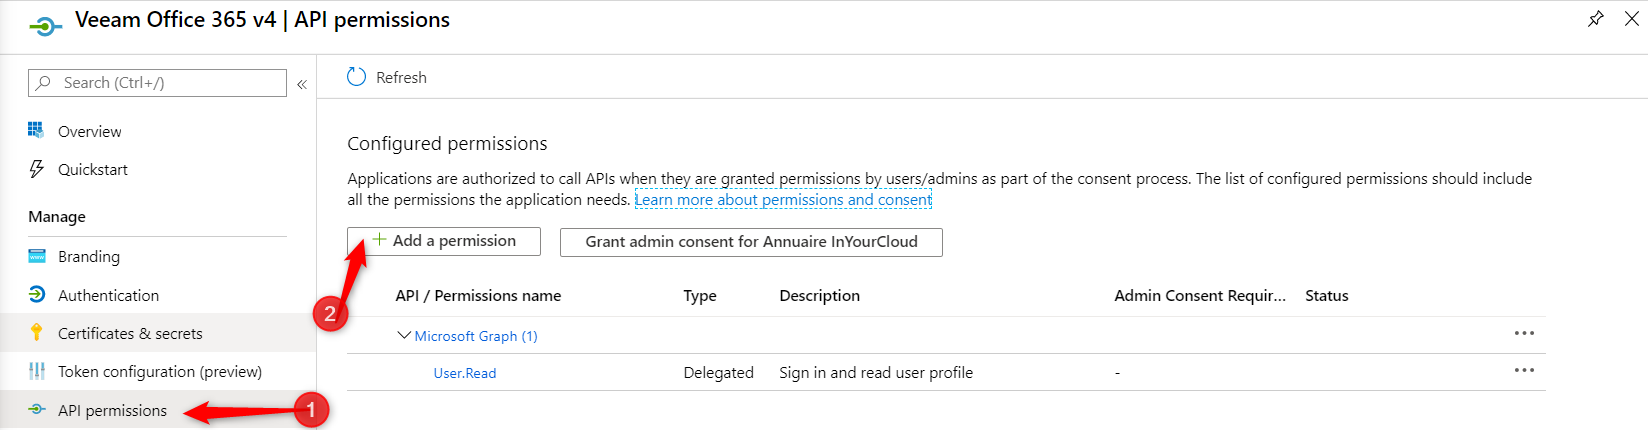 Configure required permissions Modern Authentification on Veeam